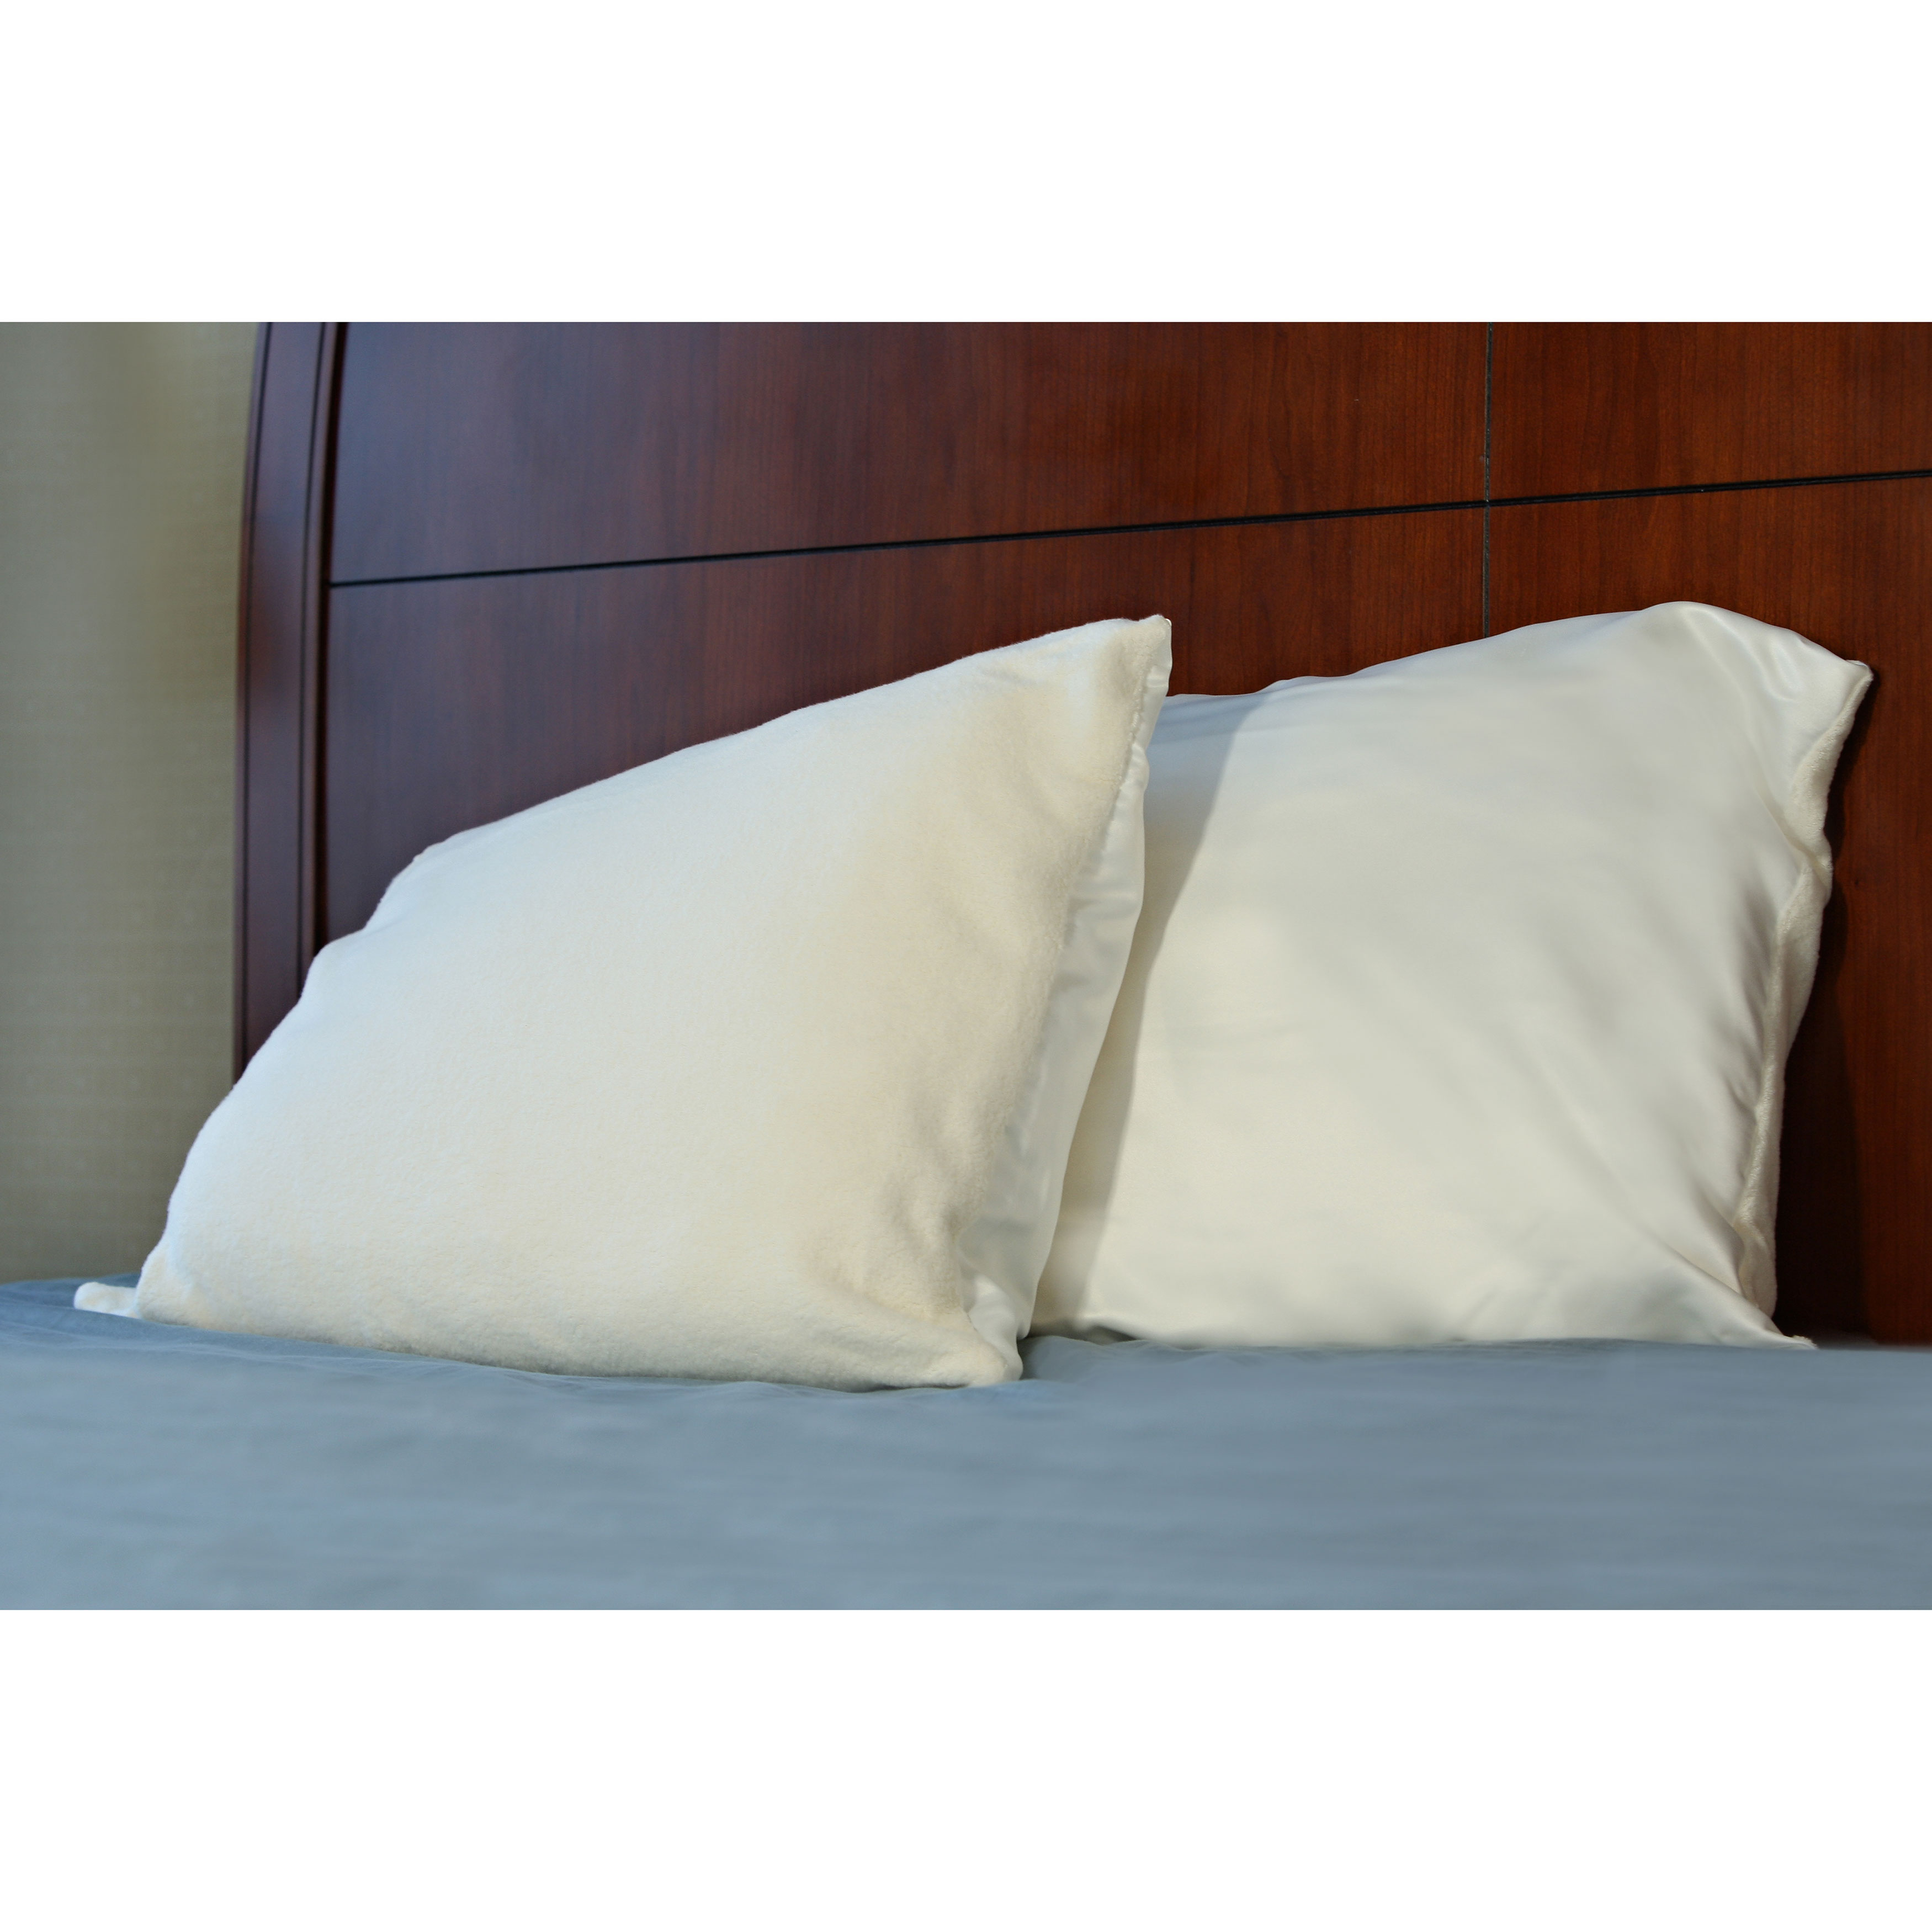 Warm/ Cool Soft Memory Foam Standard Size Bed Pillow at Sears.com